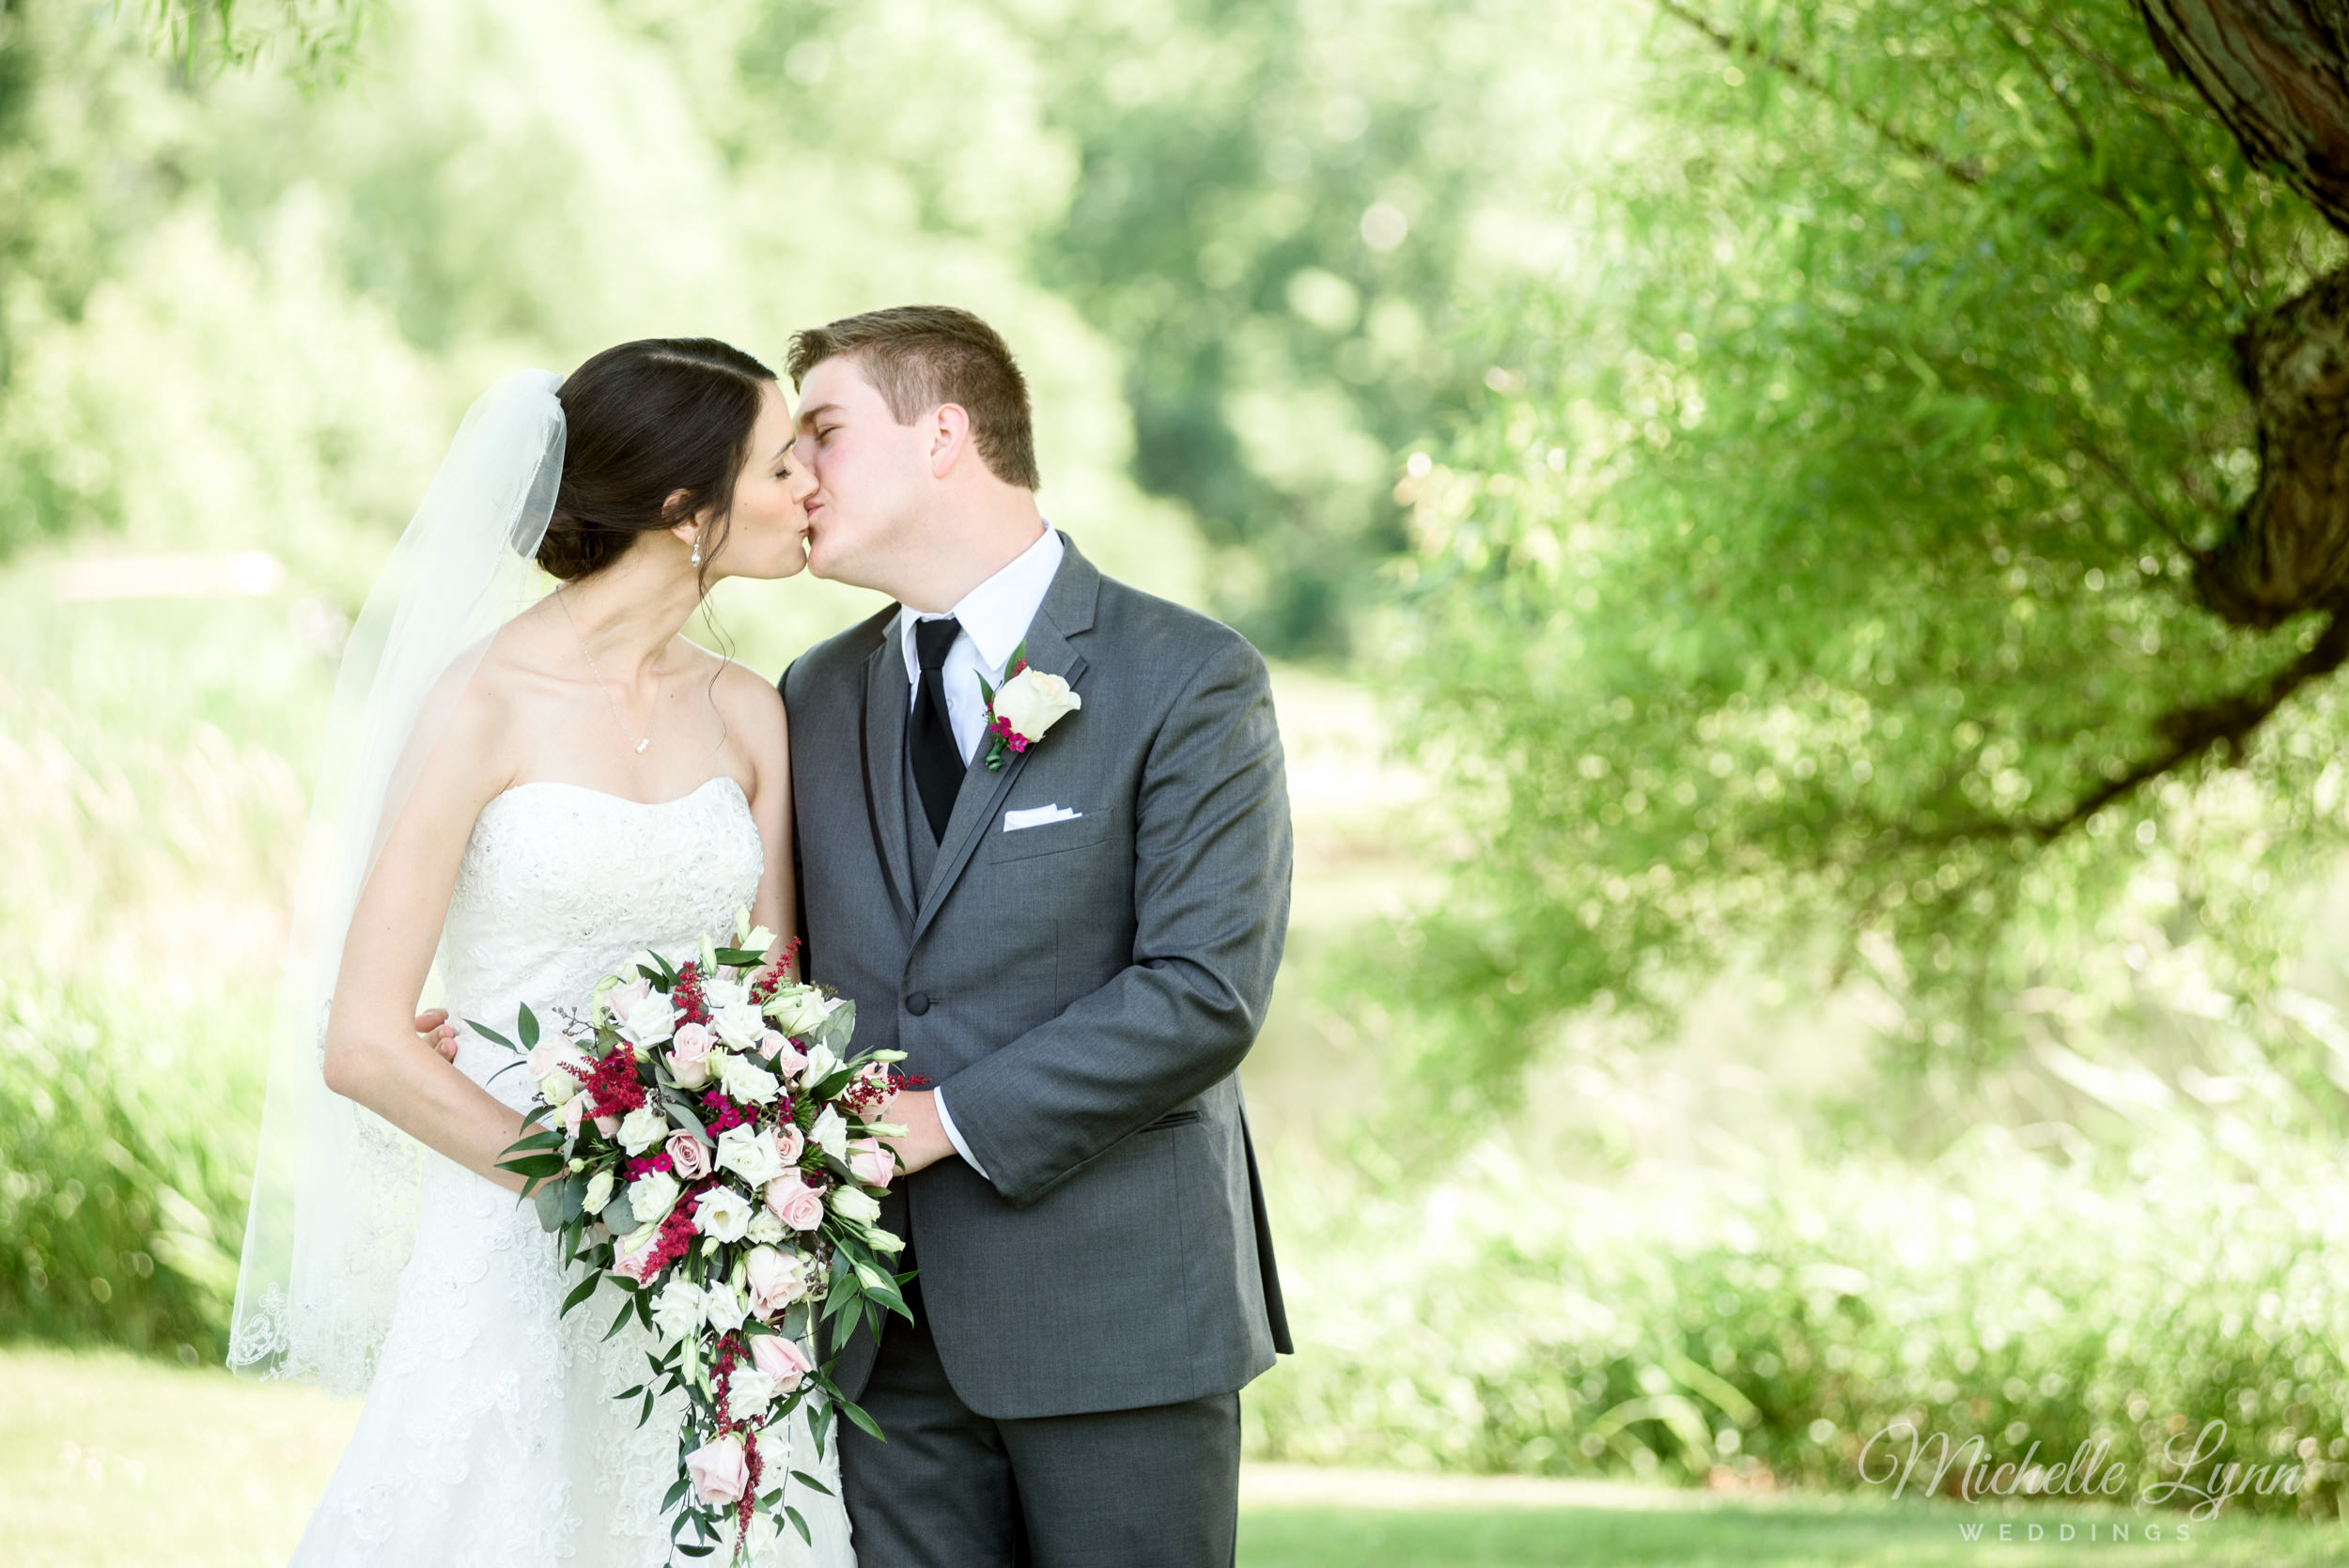 mlw-loft-at-sweet-water-country-club-wedding-photography-19.jpg